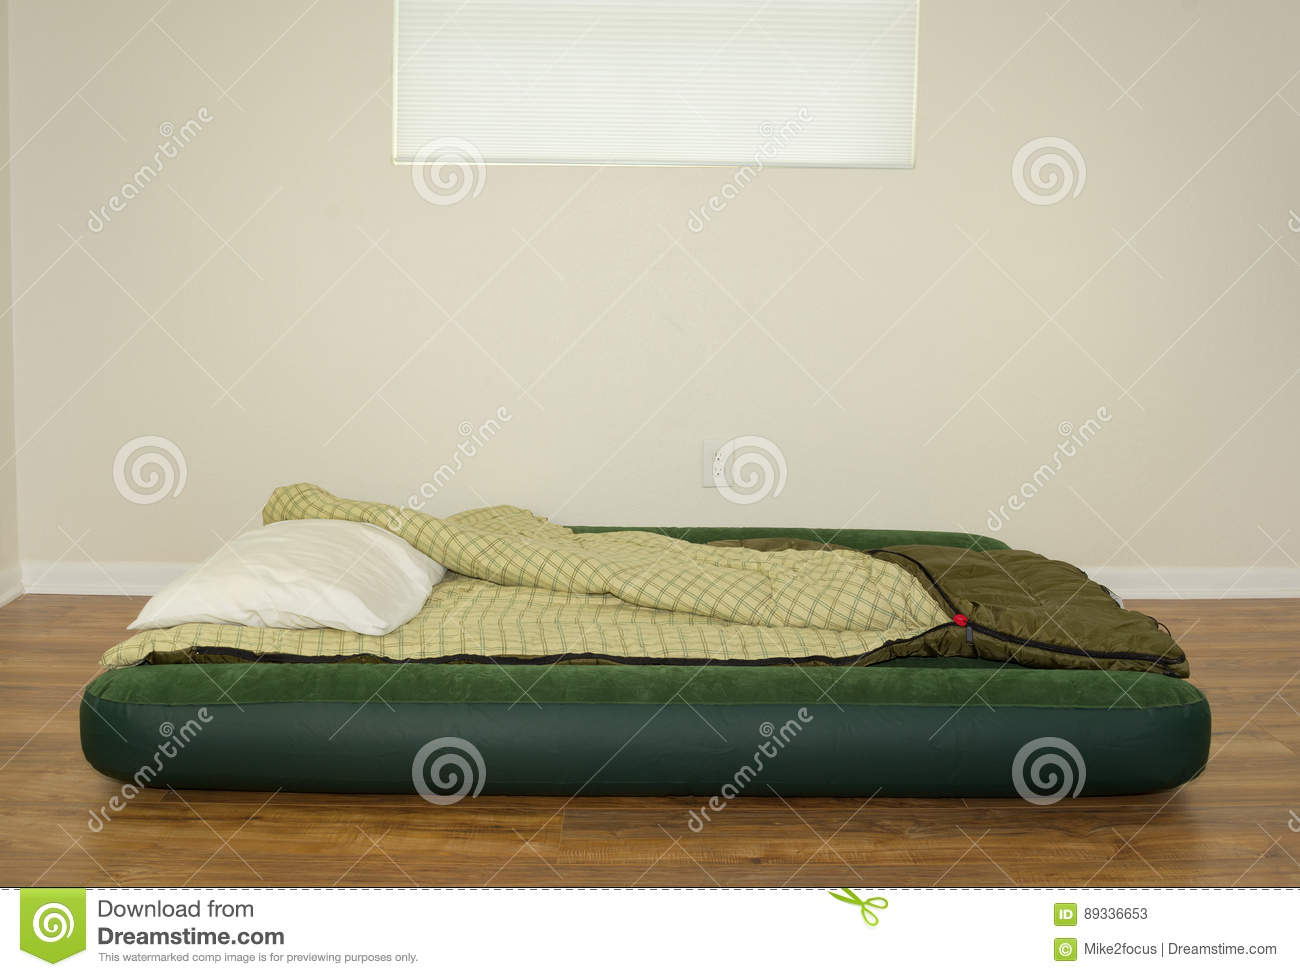 blow up air mattress bed with sleeping bag and pillow stock image image of accommodation living 89336653